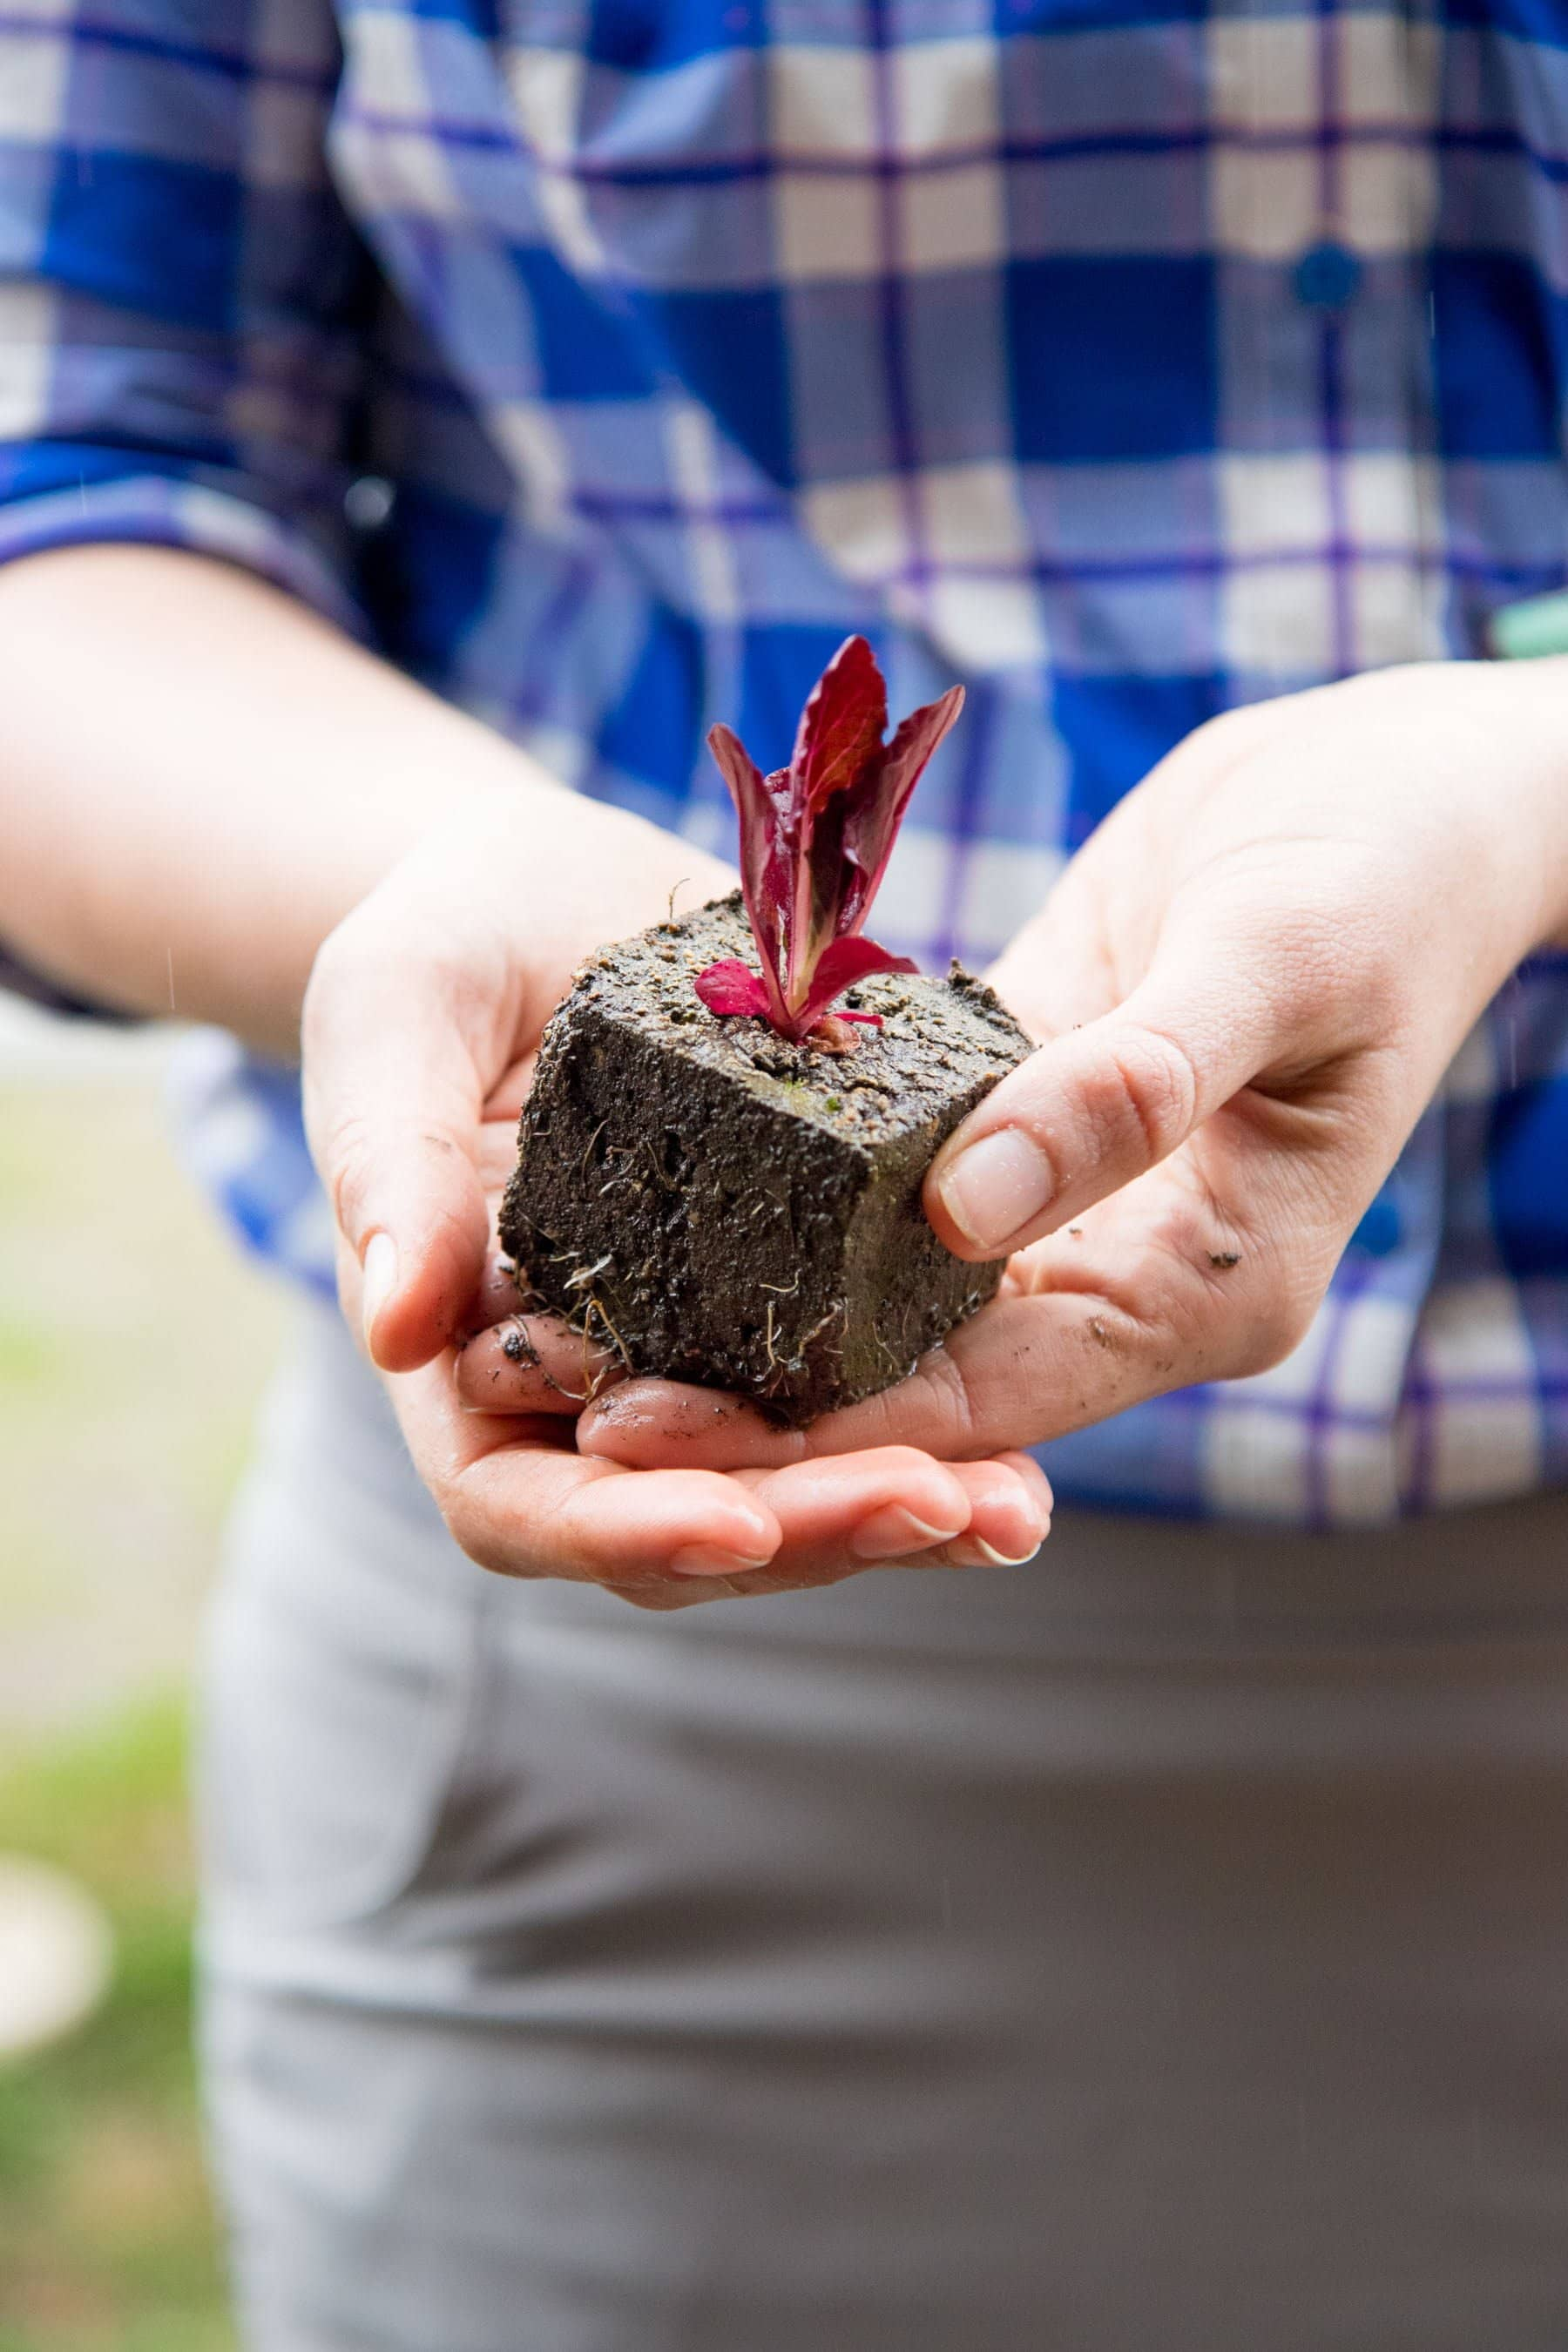 Hands holding soil block with red lettuce plant